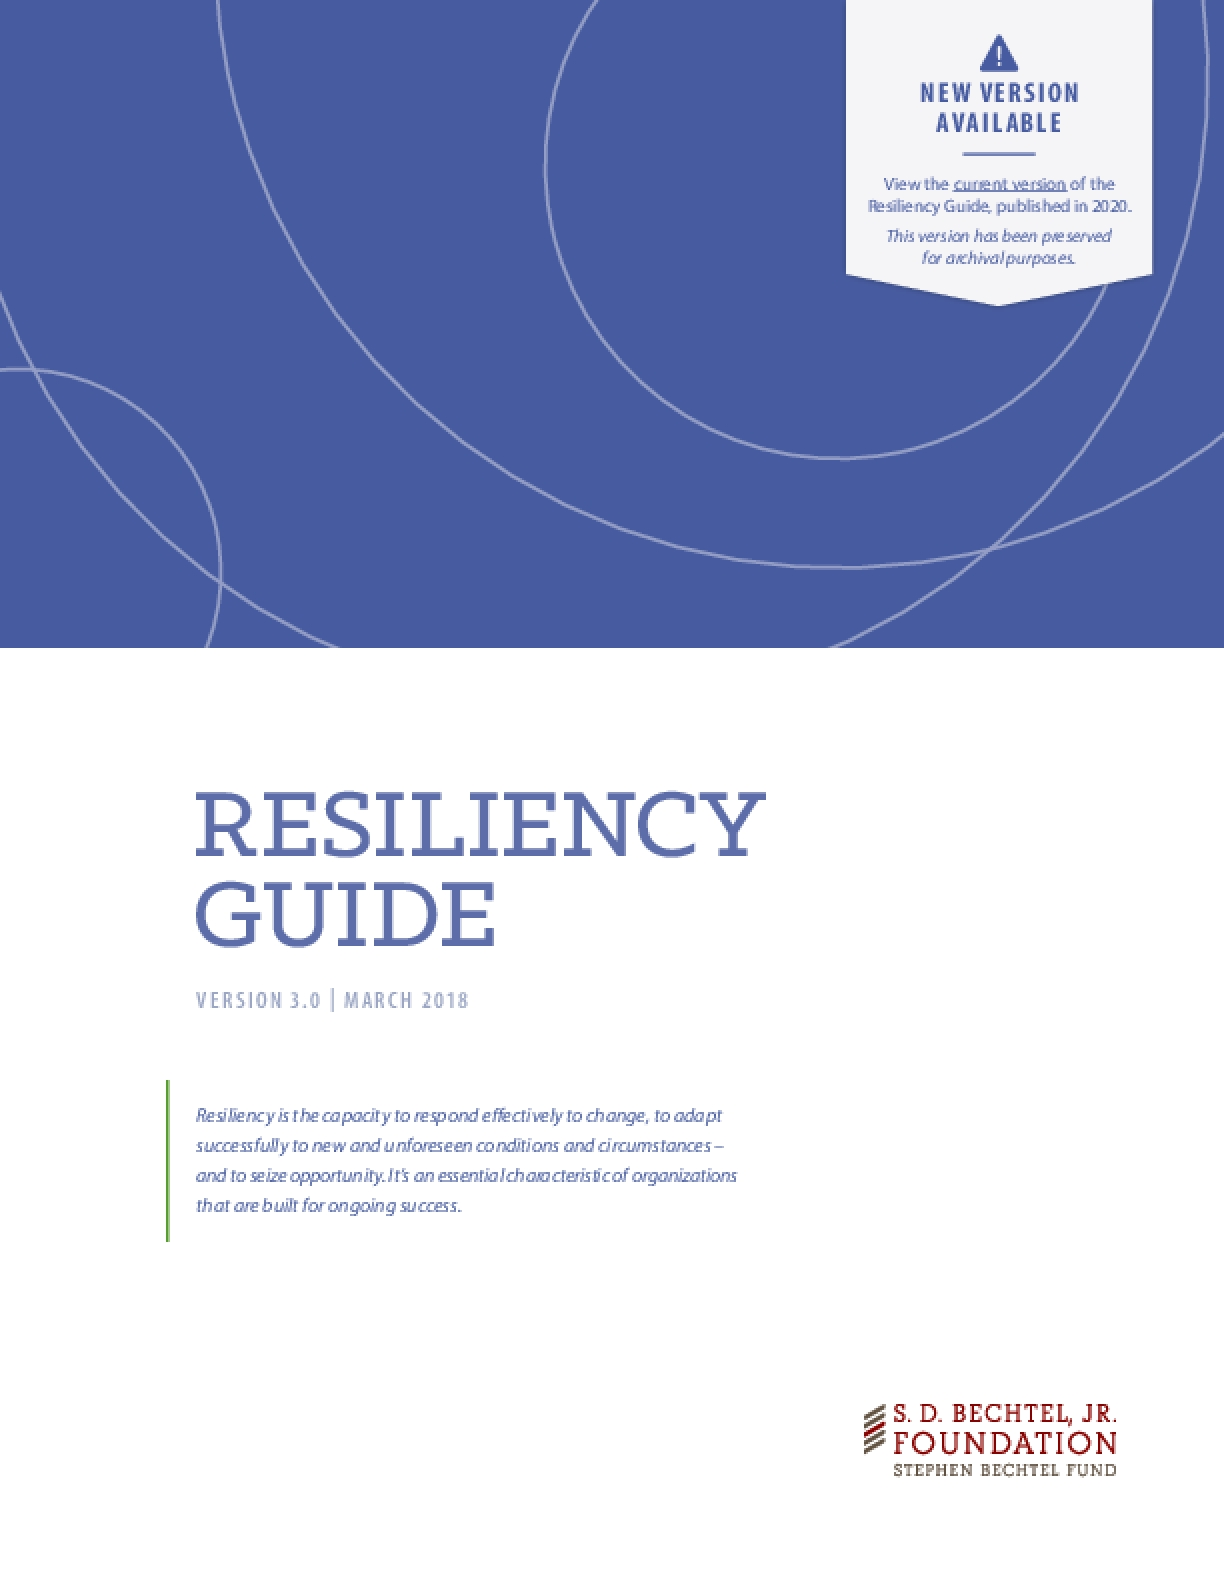 Resiliency Guide